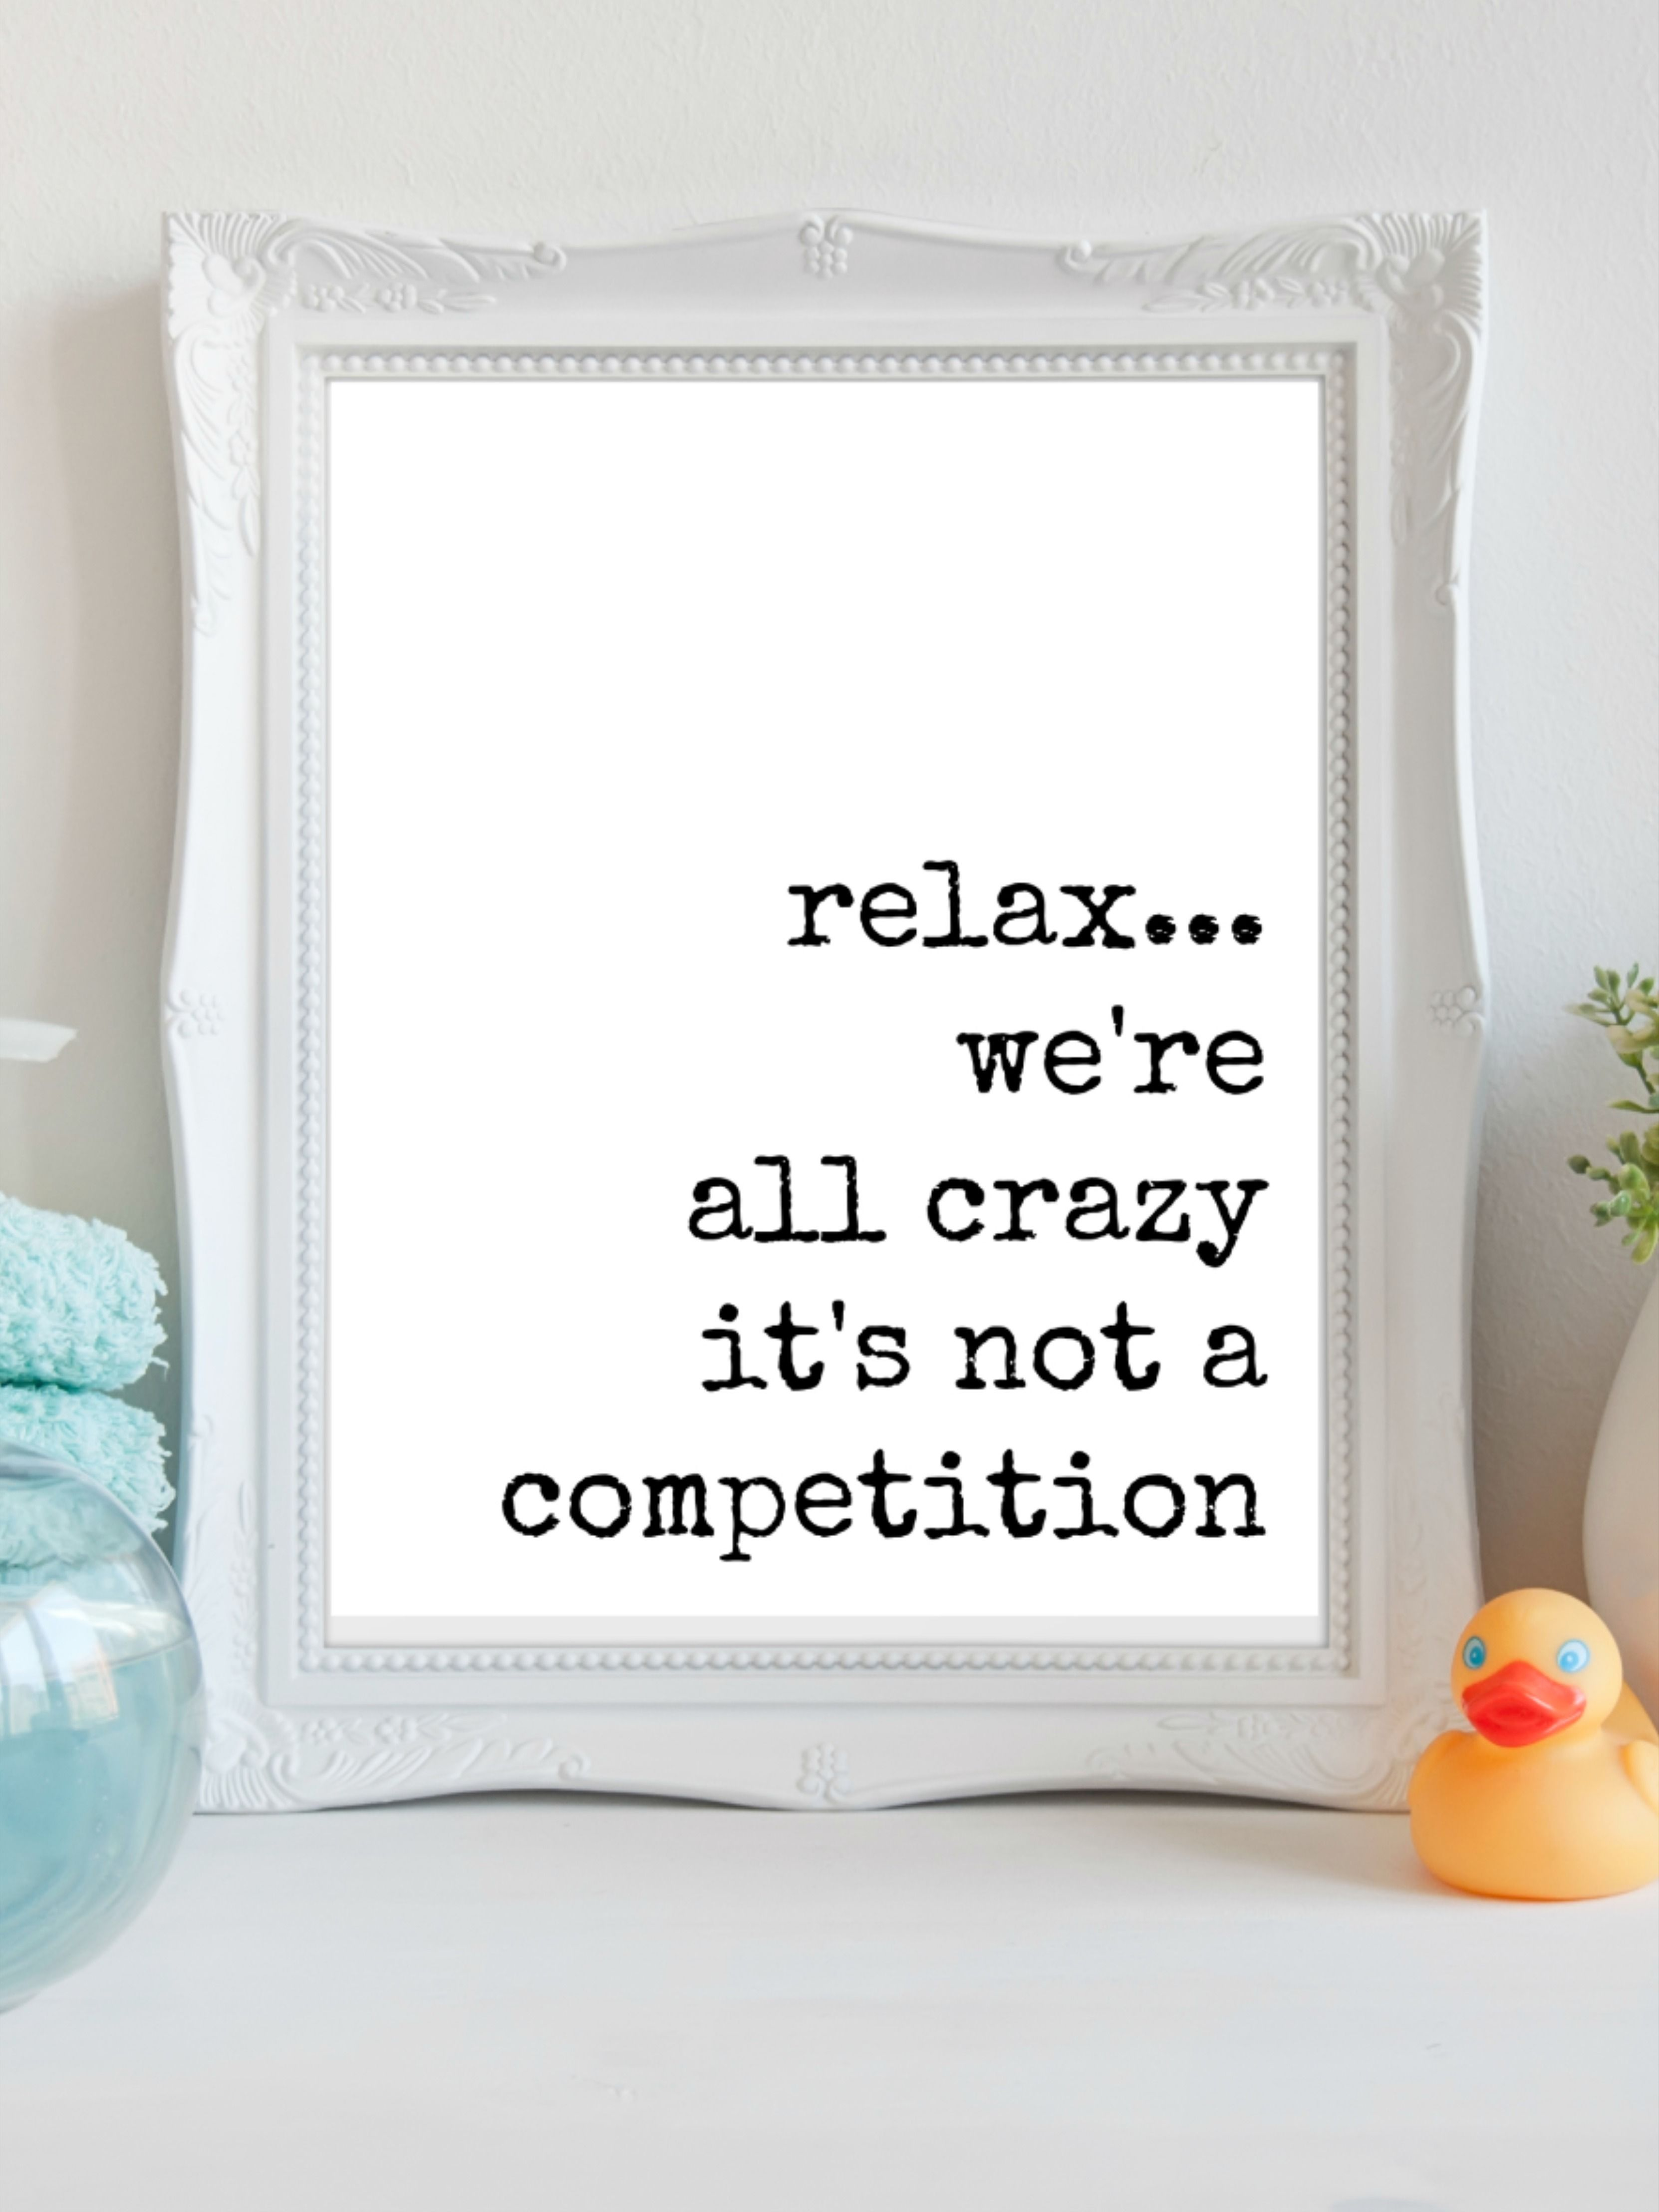 Funny Stress Relief Quote Relax We Re All Crazy Feel Better Gift Funny Bathroom Printable Wall Art Or Shelf Decor Stress Relief Quotes Funny Stress Relief Quotes Crazy Quotes